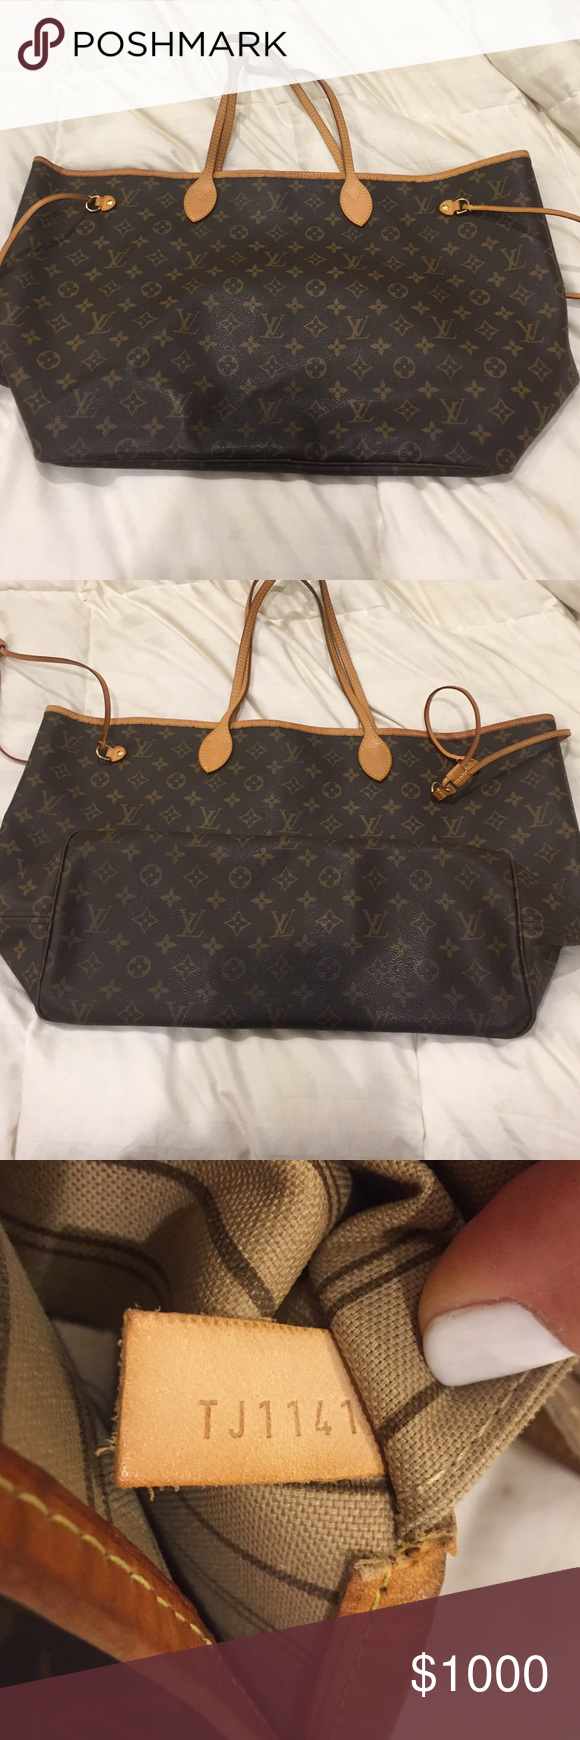 Louis Vuitton Neverfull GM Excellent condition! No cracks in trim. Moderate  patina on the handles. Ink stain on the interior. No dust bag. Louis Vuitton  ... b13b6684a7